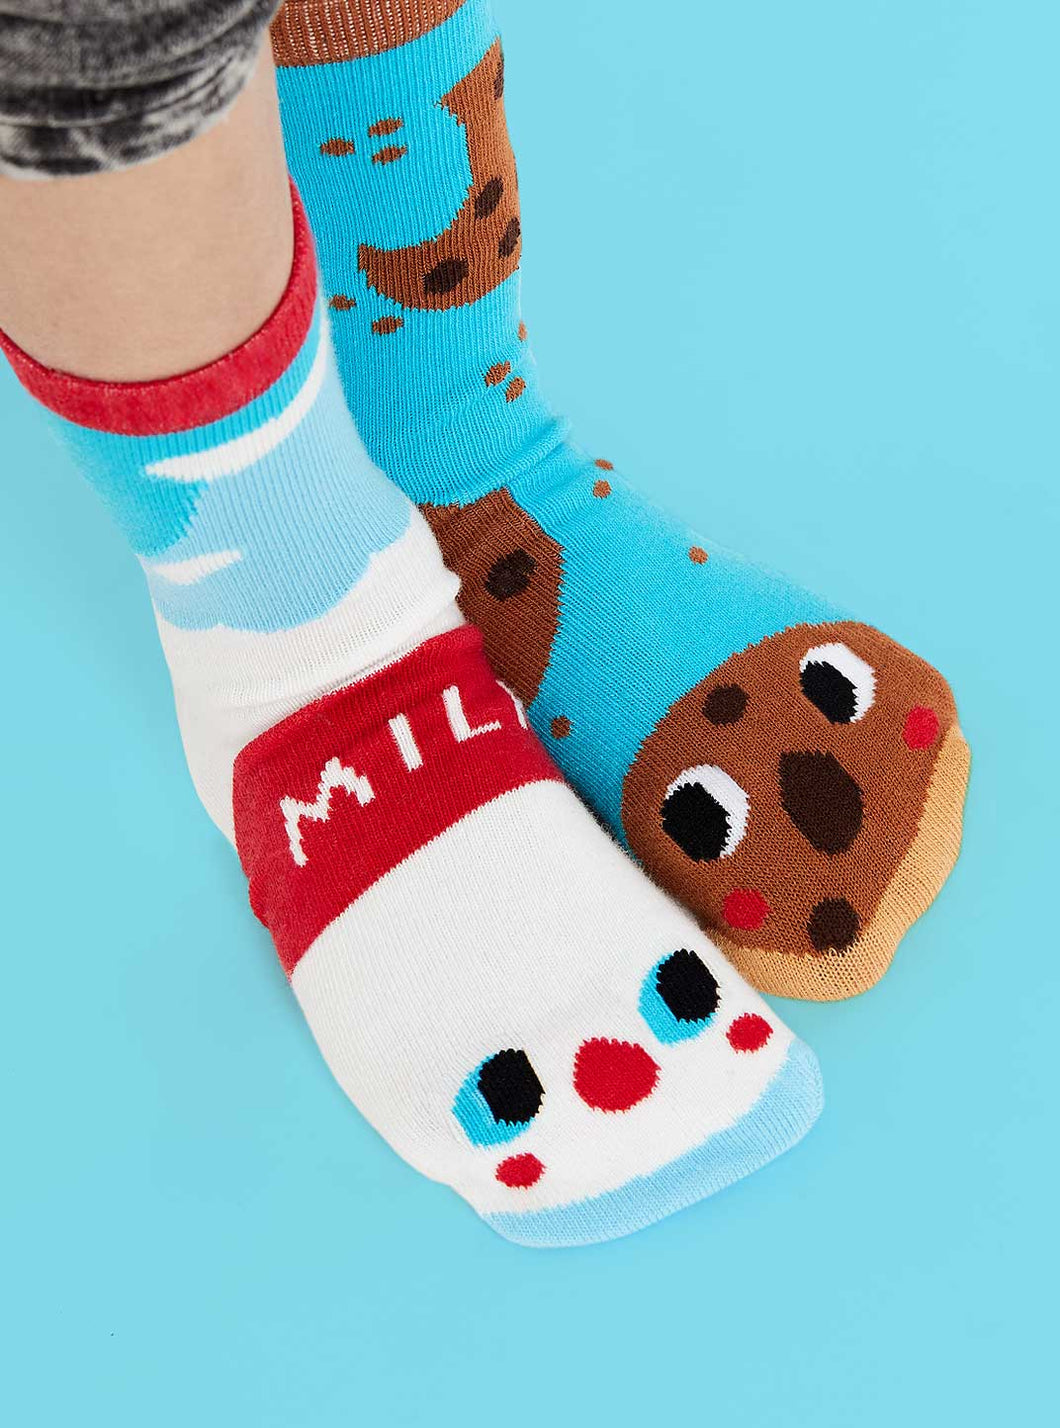 Milk & Cookies | Kids Socks | Collectible Mismatched Socks